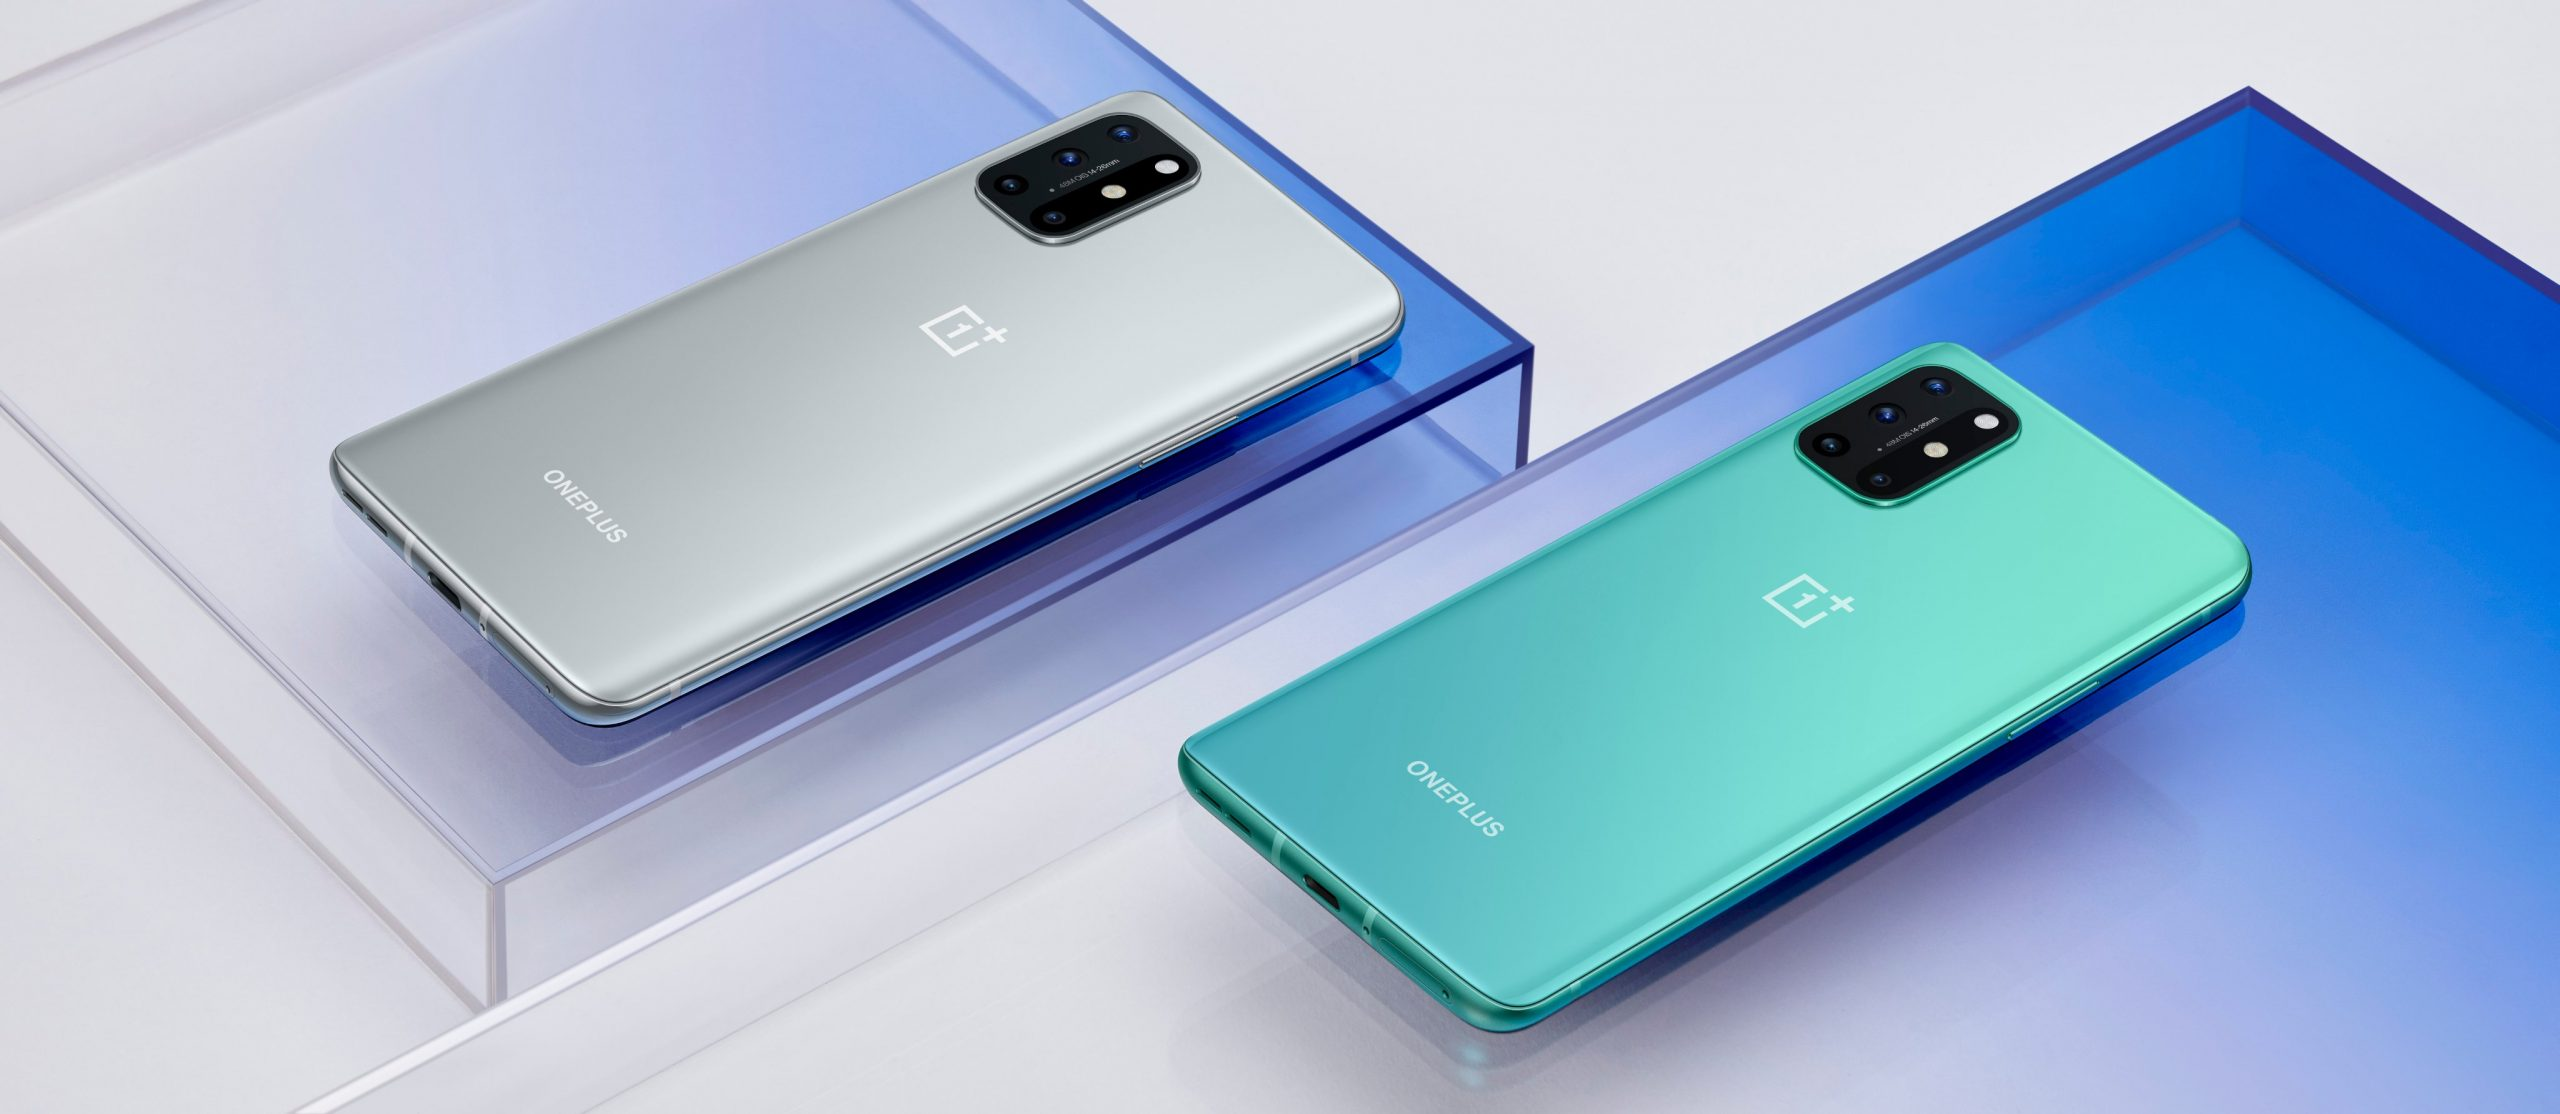 oneplus-8t-official-price-specs-release-date-availability-philippines